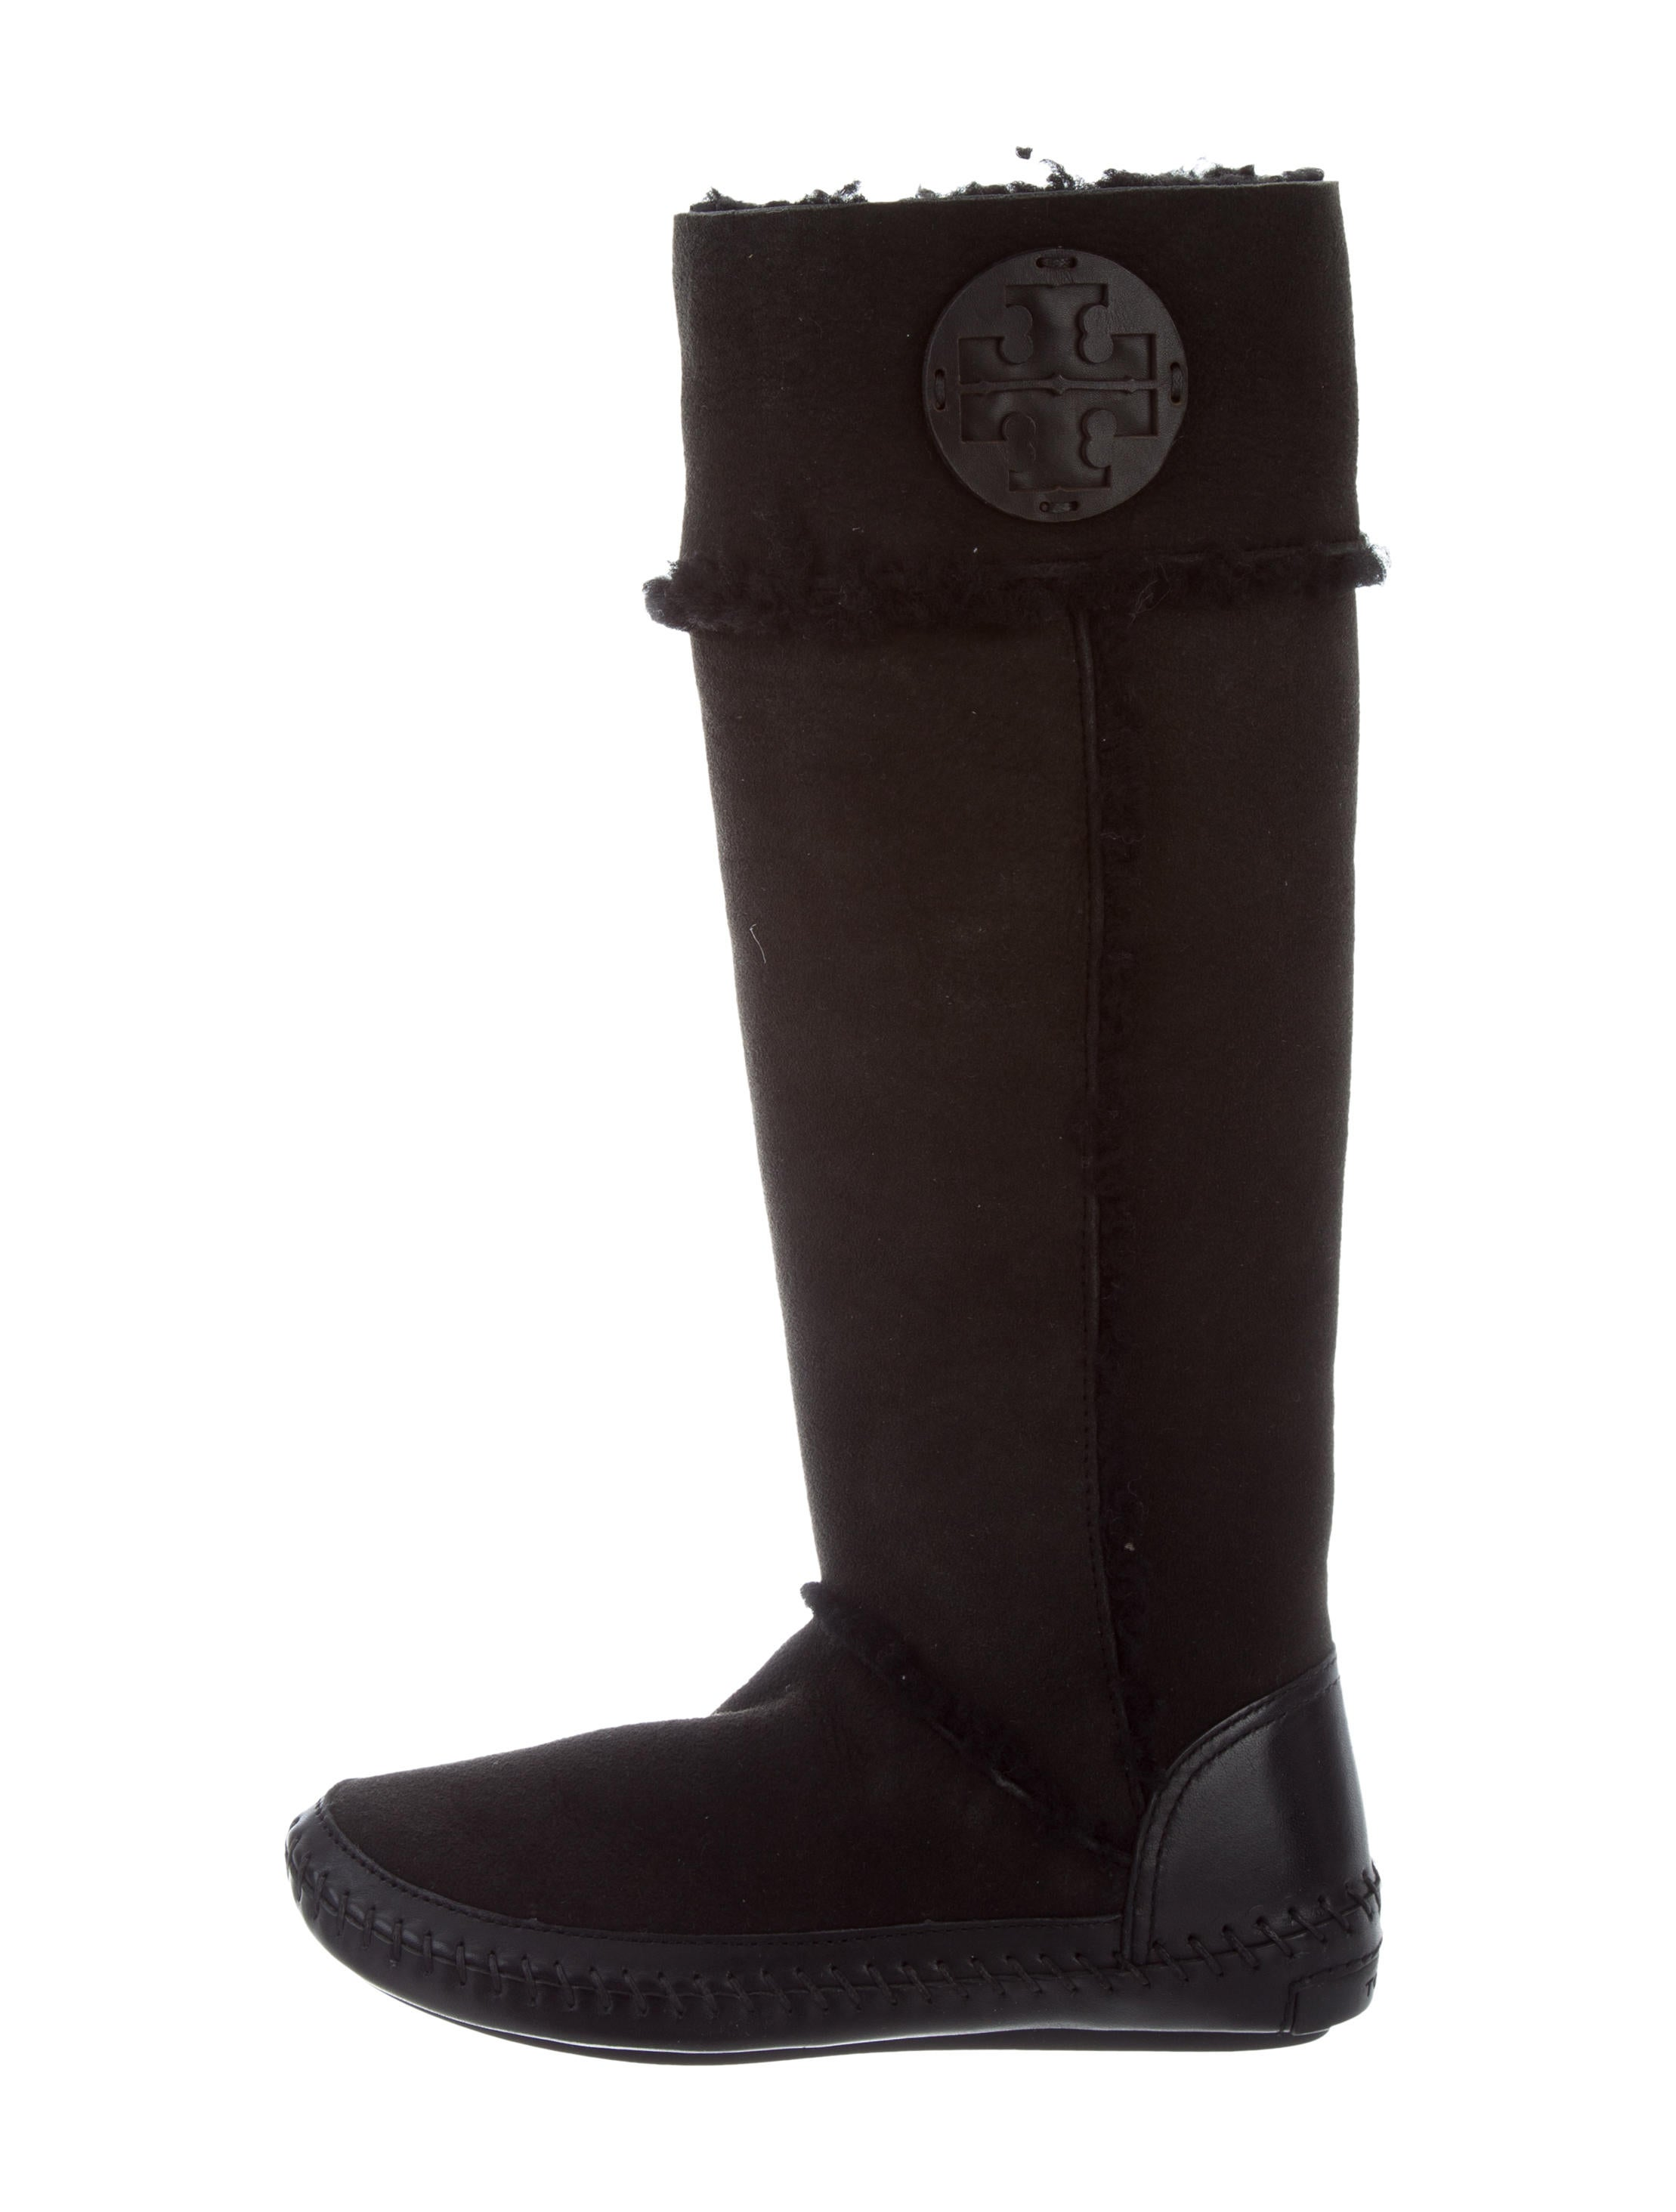 prices cheap price Tory Burch Ginger Shearling Boots fashionable for sale buy online with paypal geniue stockist online slP8xE0Mr